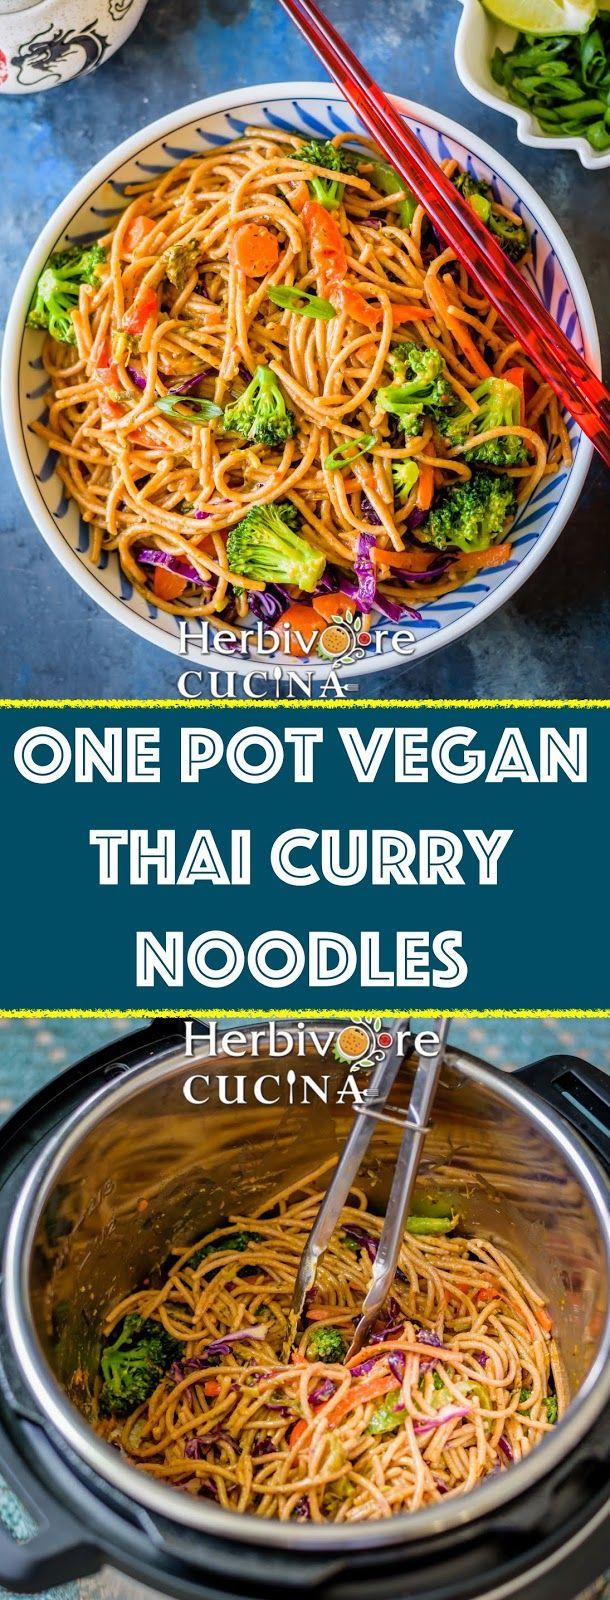 One Pot Vegan Thai Curry Noodles #easyonepotmeals